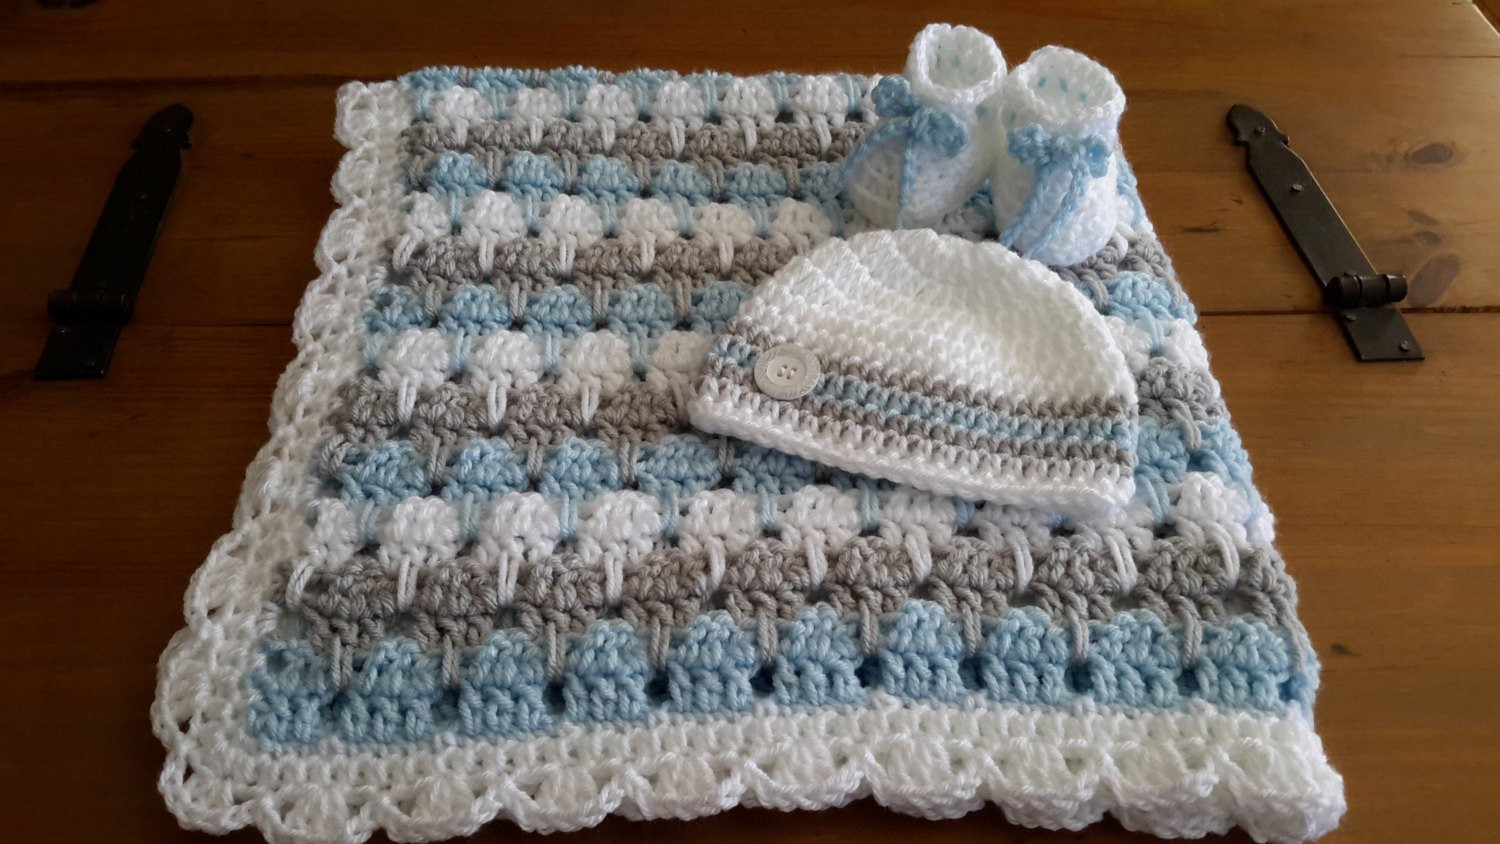 Baby Boy Crochet Blanket Patterns Lovely Baby Boy Blanket Crochet Stripe Crochet Blanket Afghan Of Baby Boy Crochet Blanket Patterns Inspirational Turquoise Baby Blanket Chunky Crochet Blanket for Baby Boy